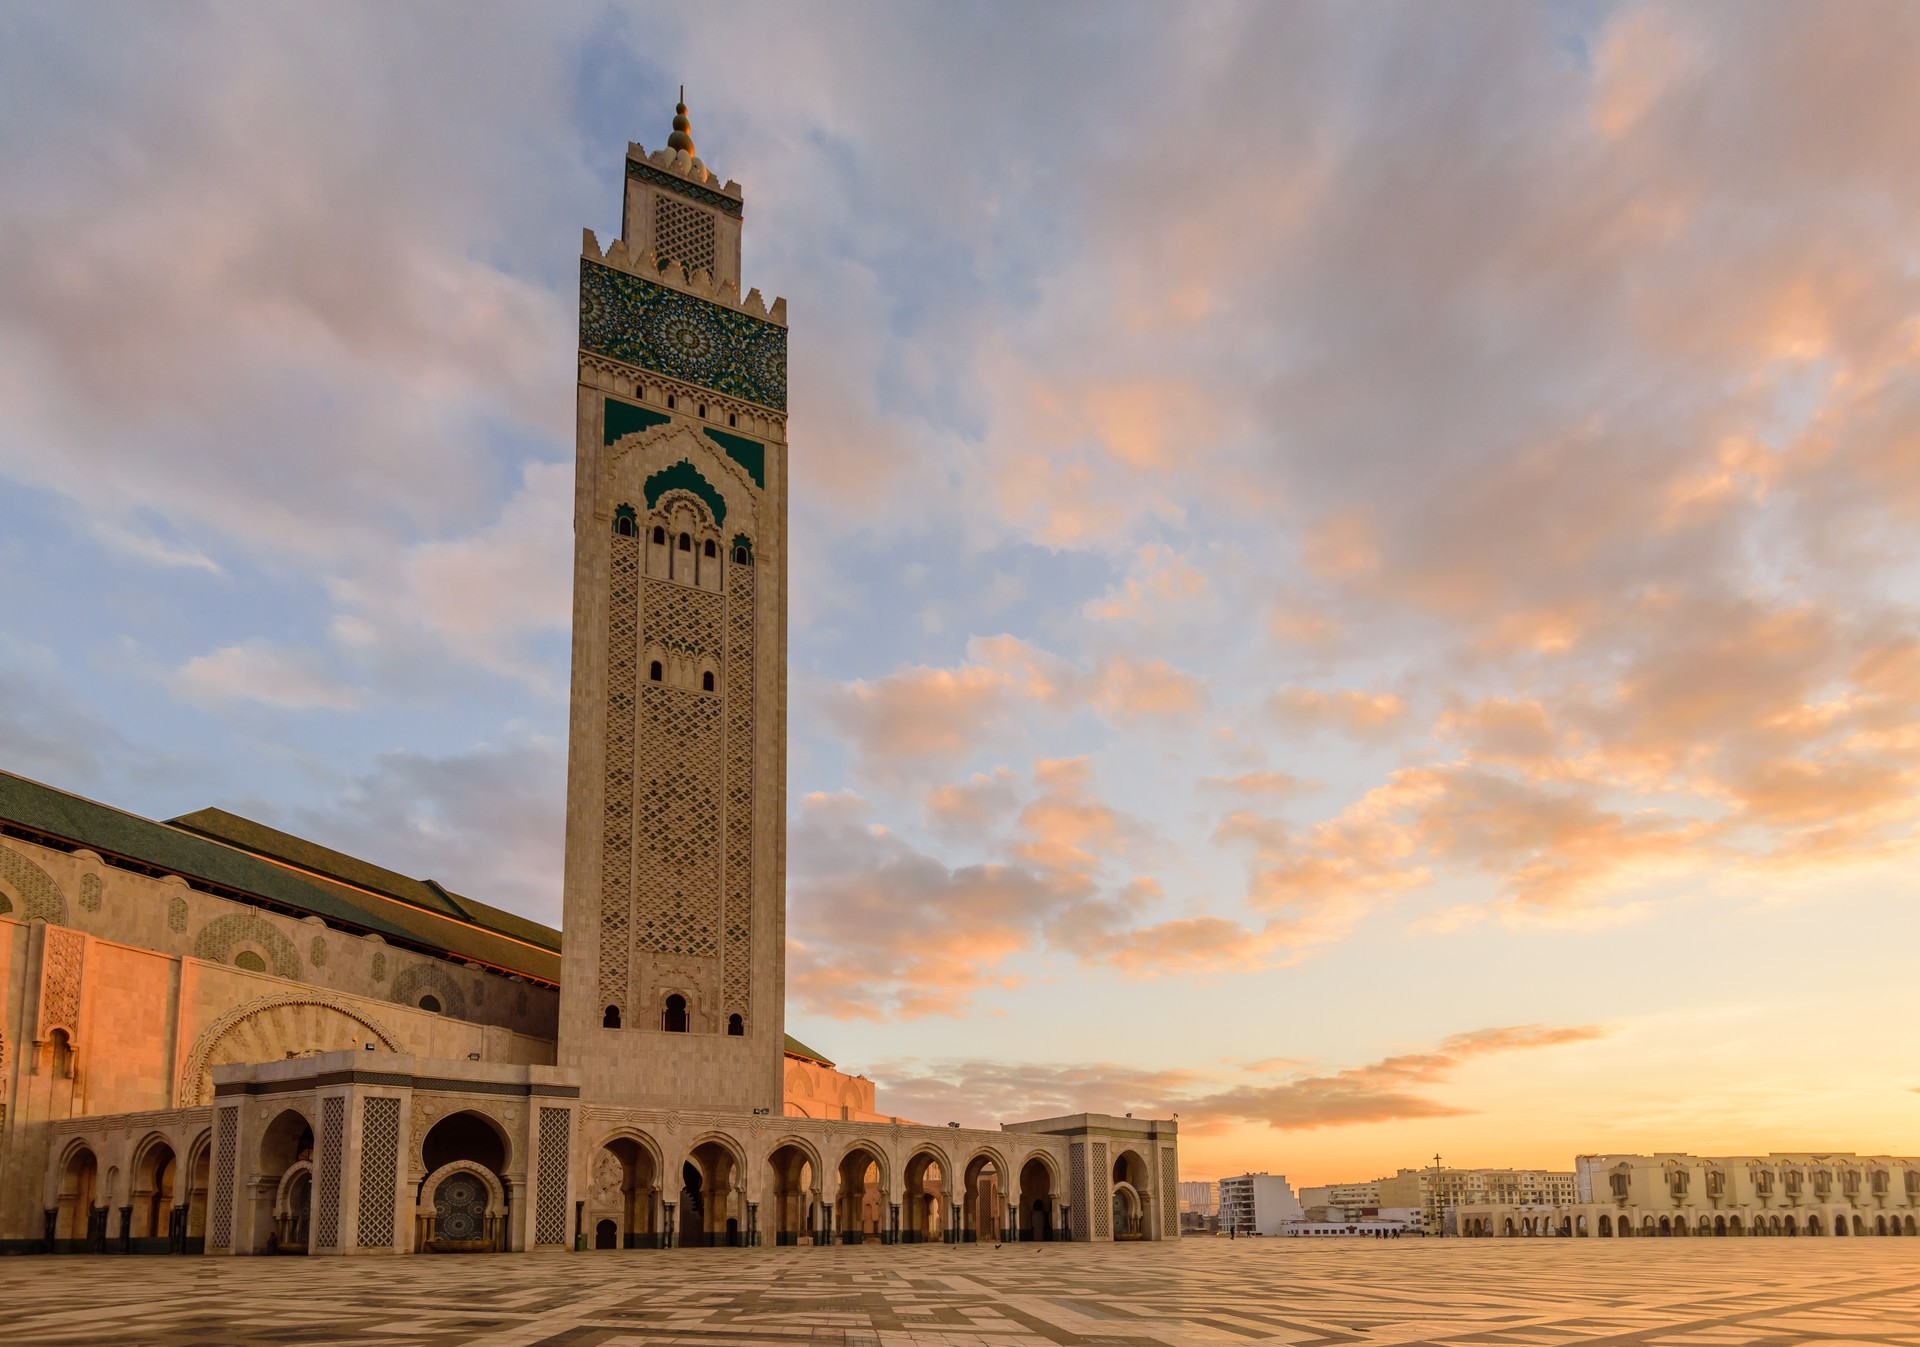 The exterior of the Hassan II Mosque in Casablanca - the largest mosque in Morocco